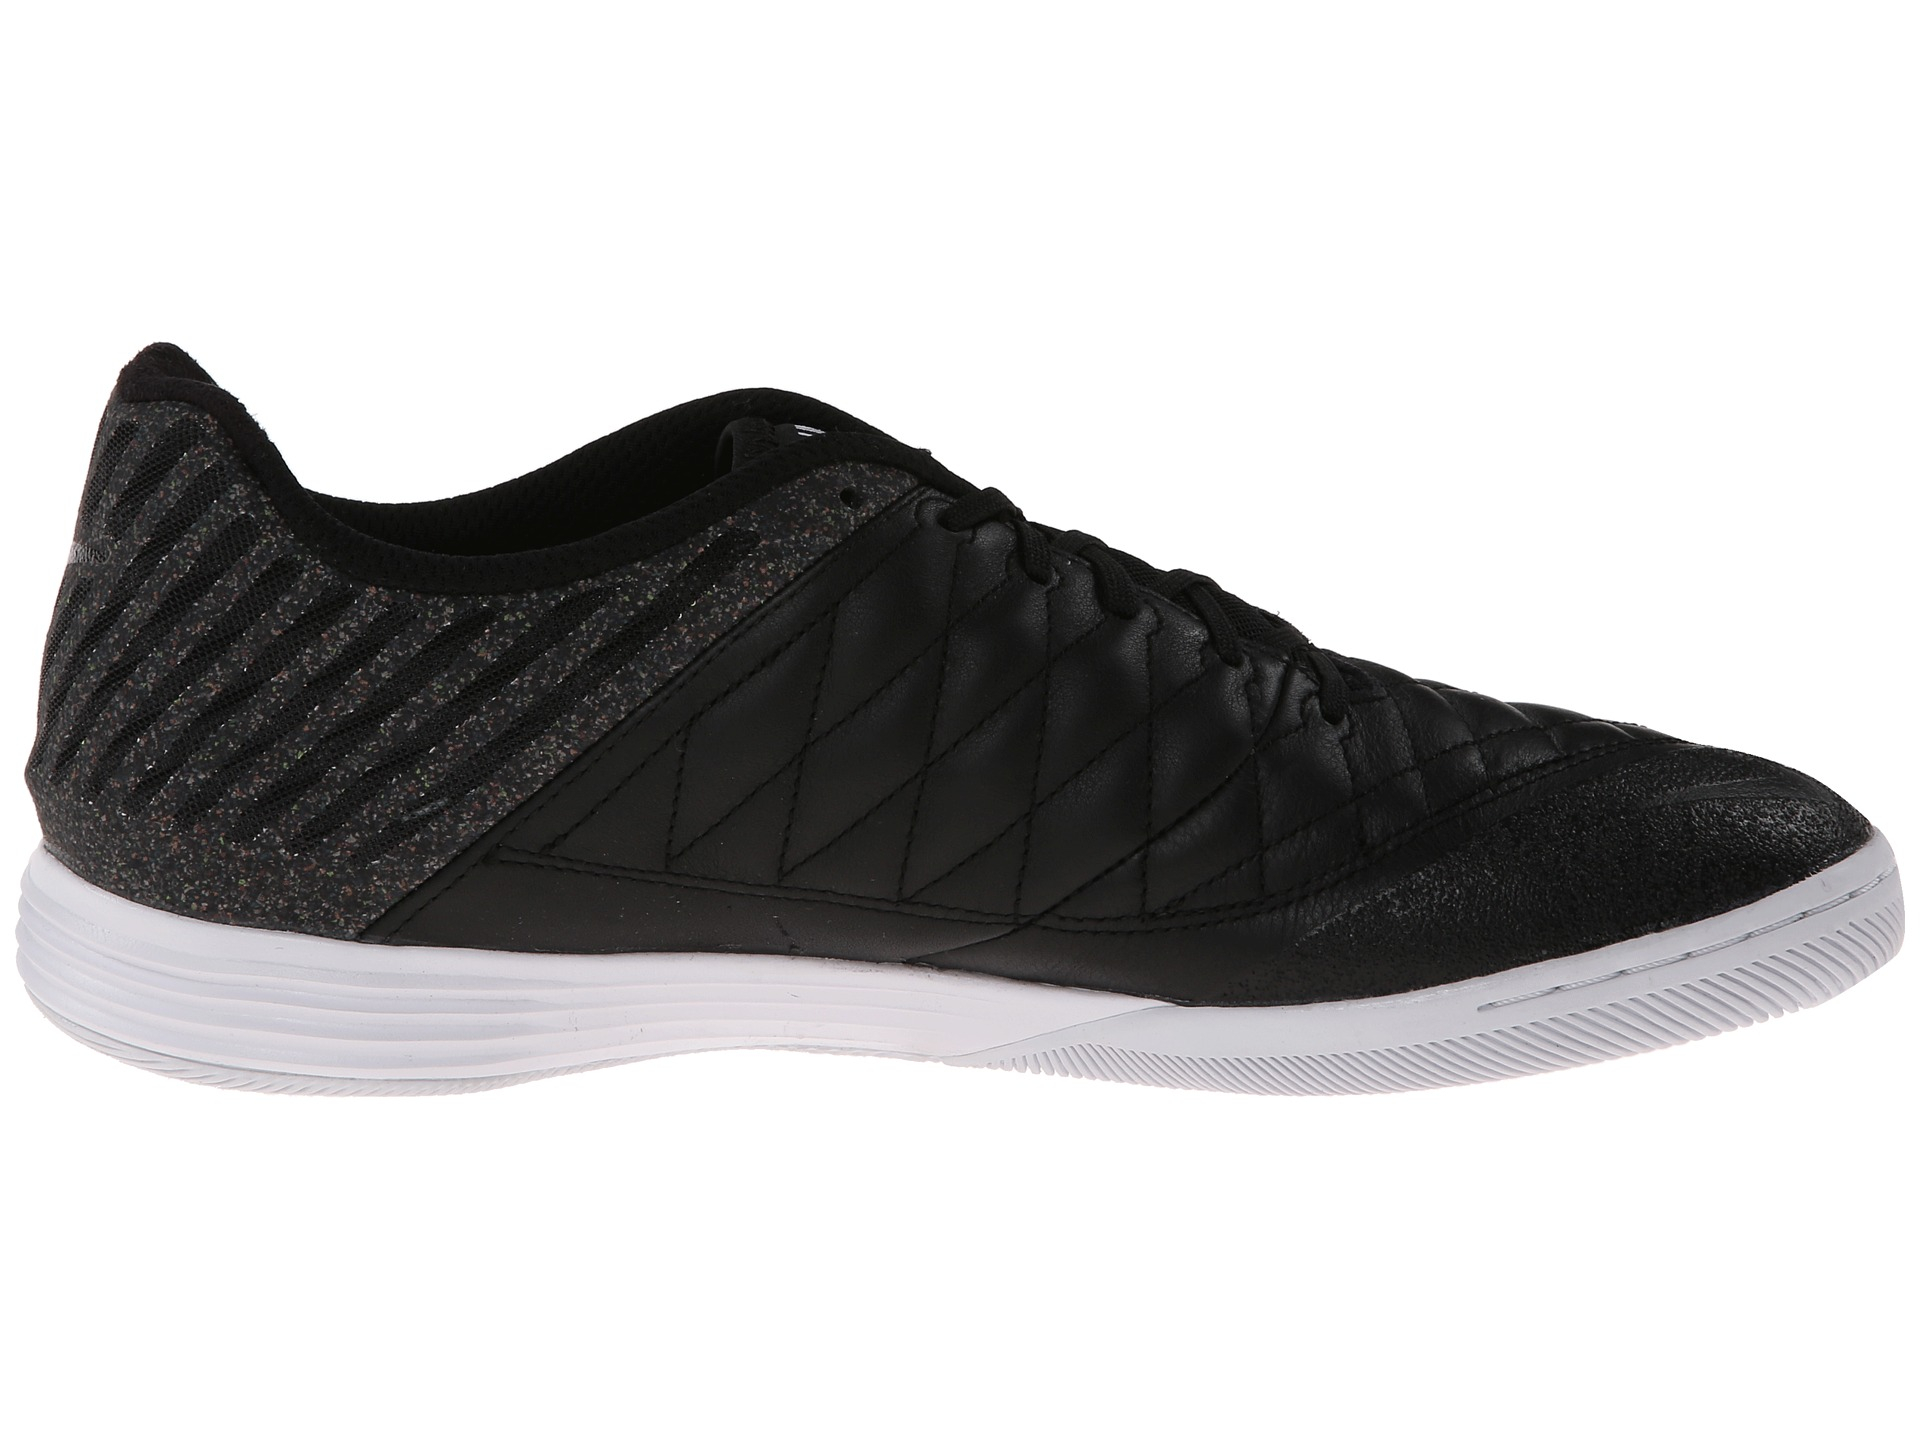 new concept c665a c9868 ... where can i buy zappos nike lunar forever . eeefc bd7ef